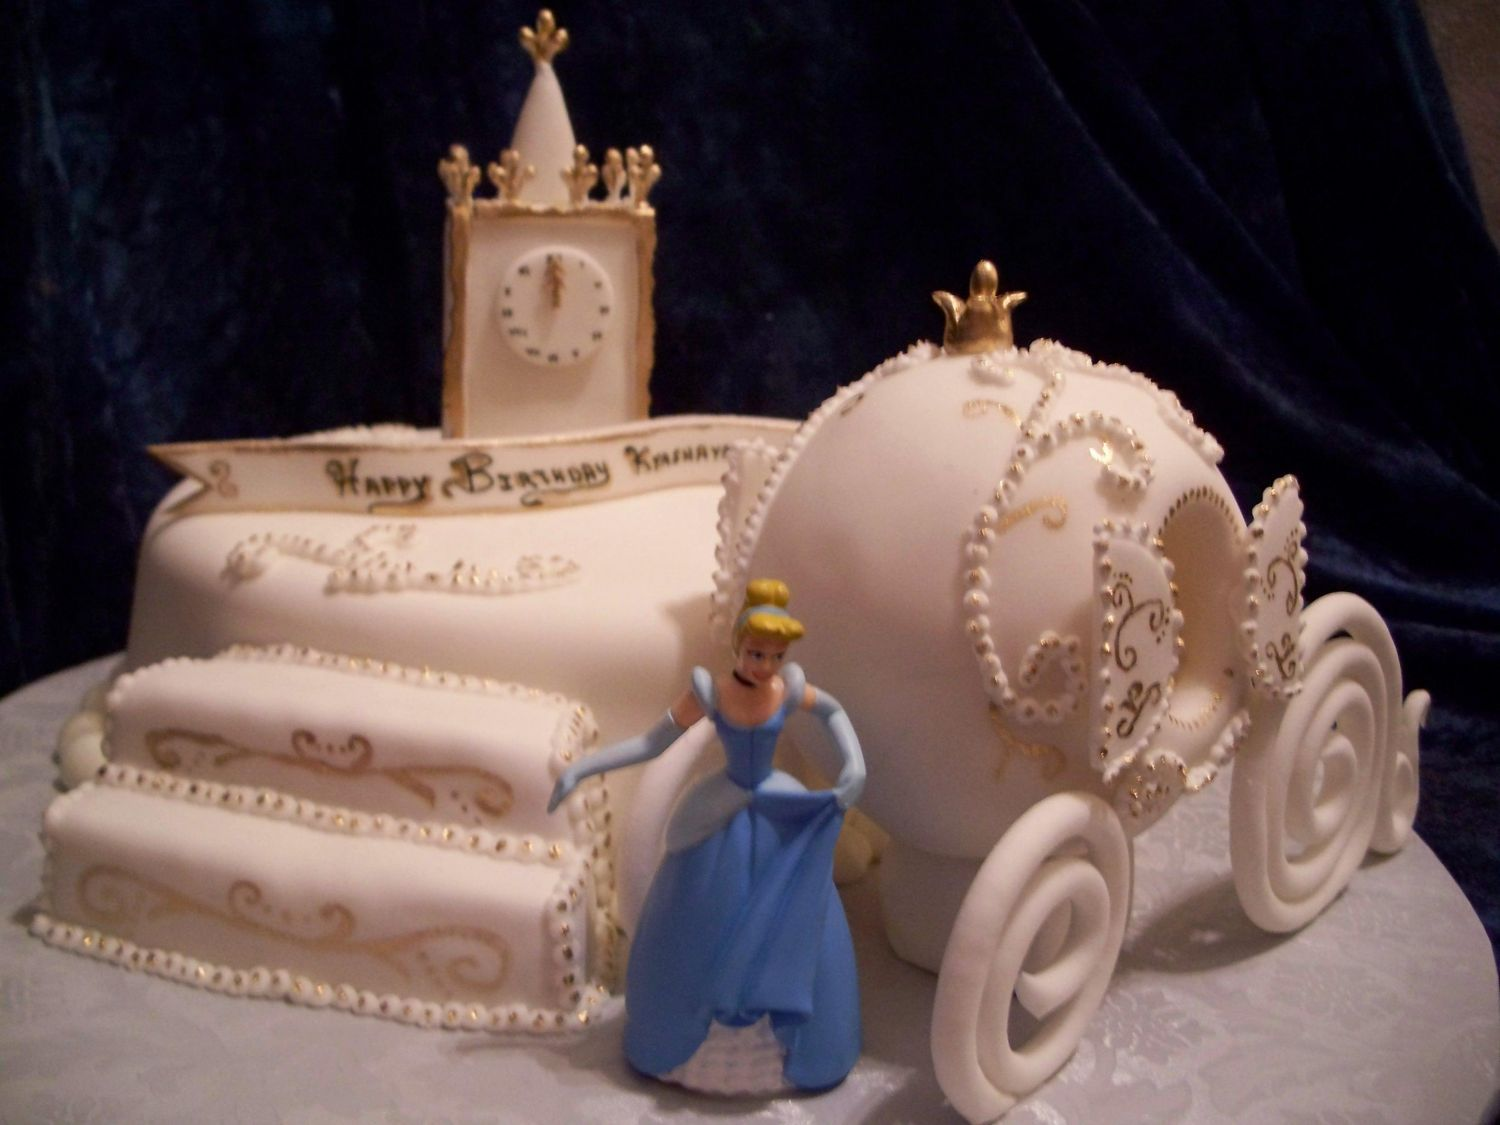 Cinderella 2 Carriage is made out of sugar and covered in